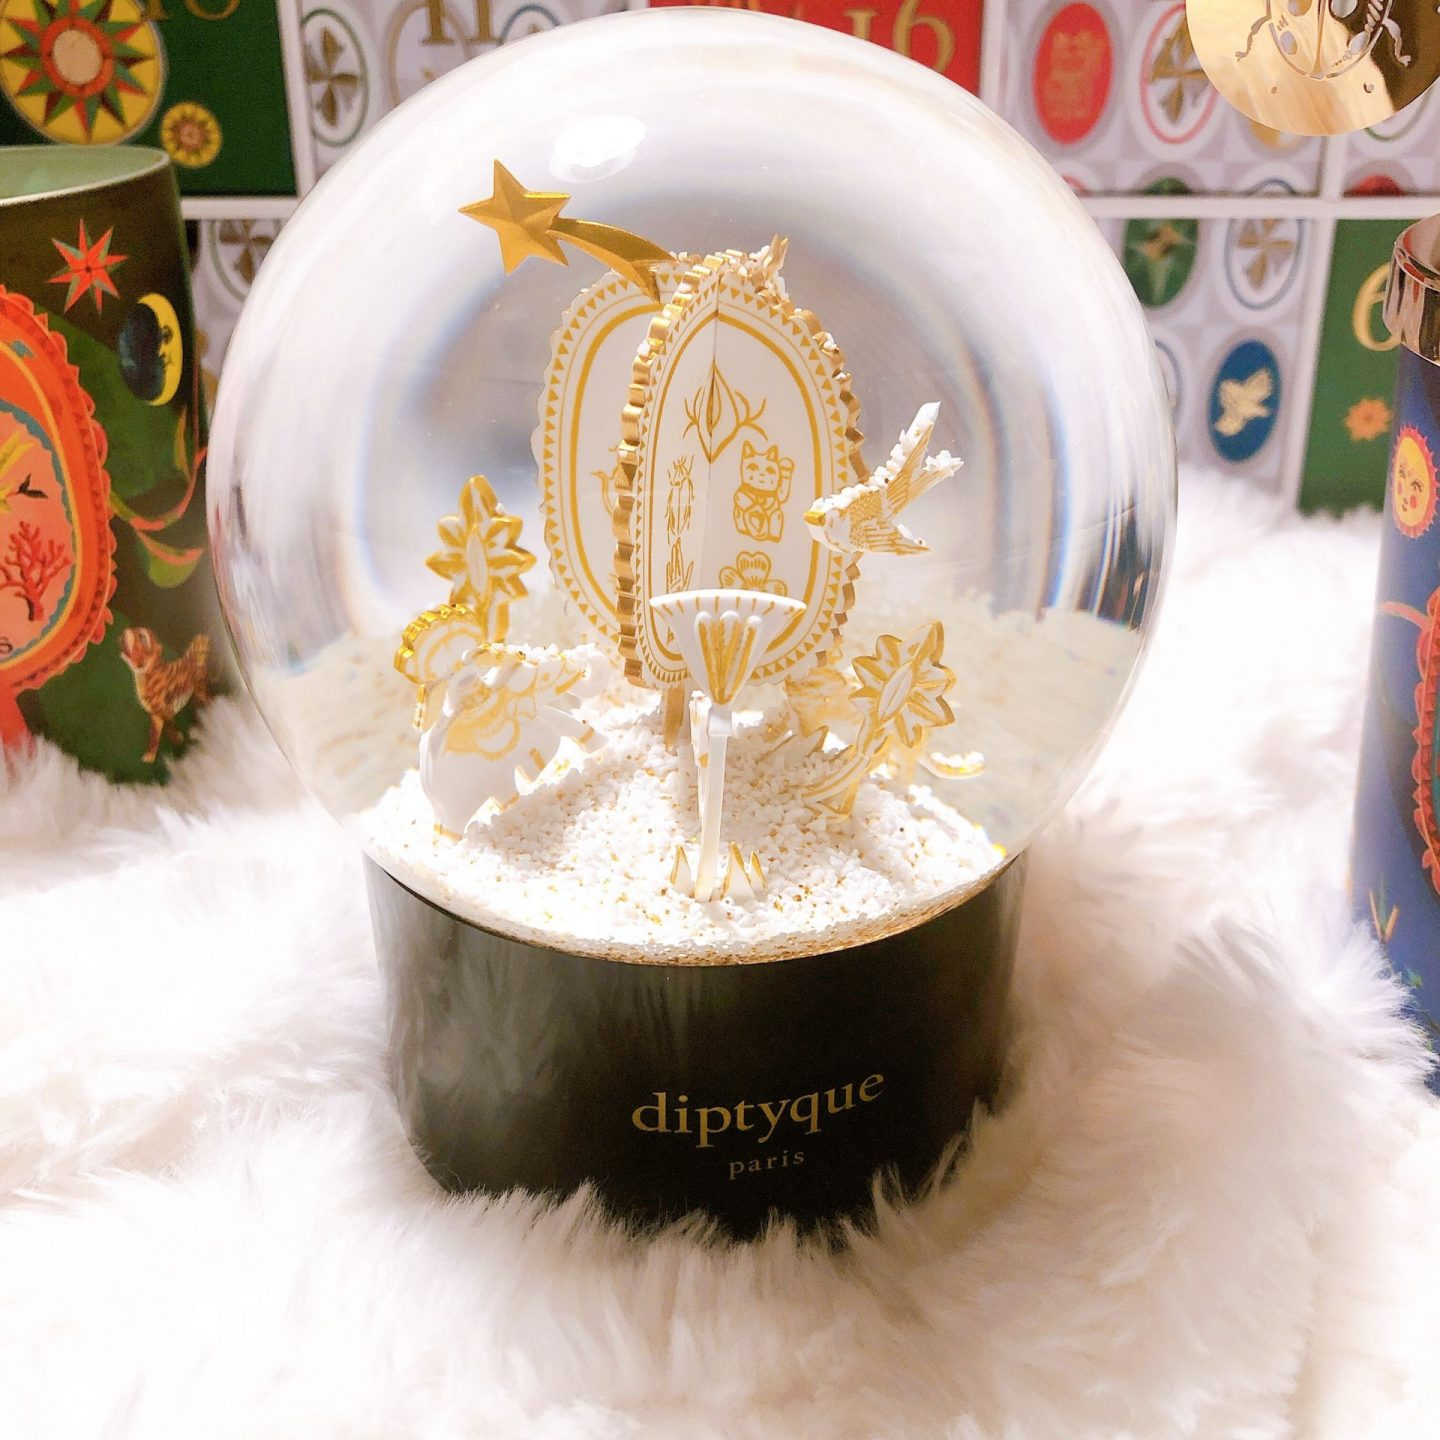 Diptyque 2019 Holiday Collection